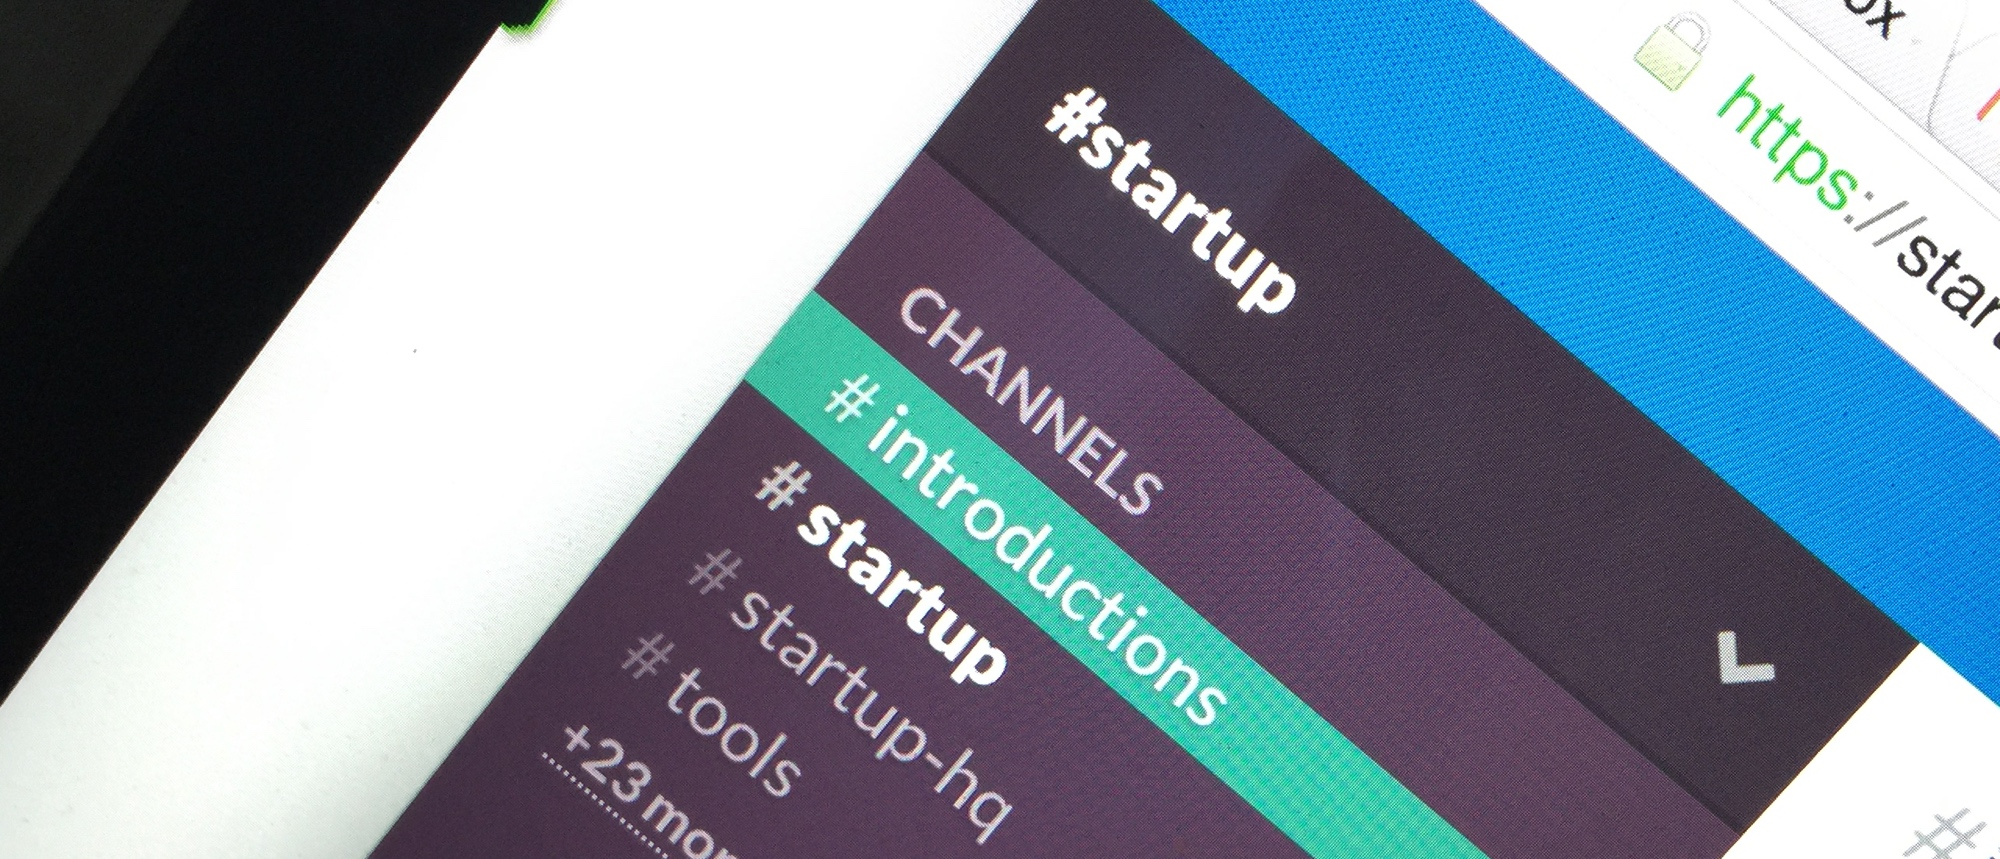 A Community of Startup Founders Grows on Slack